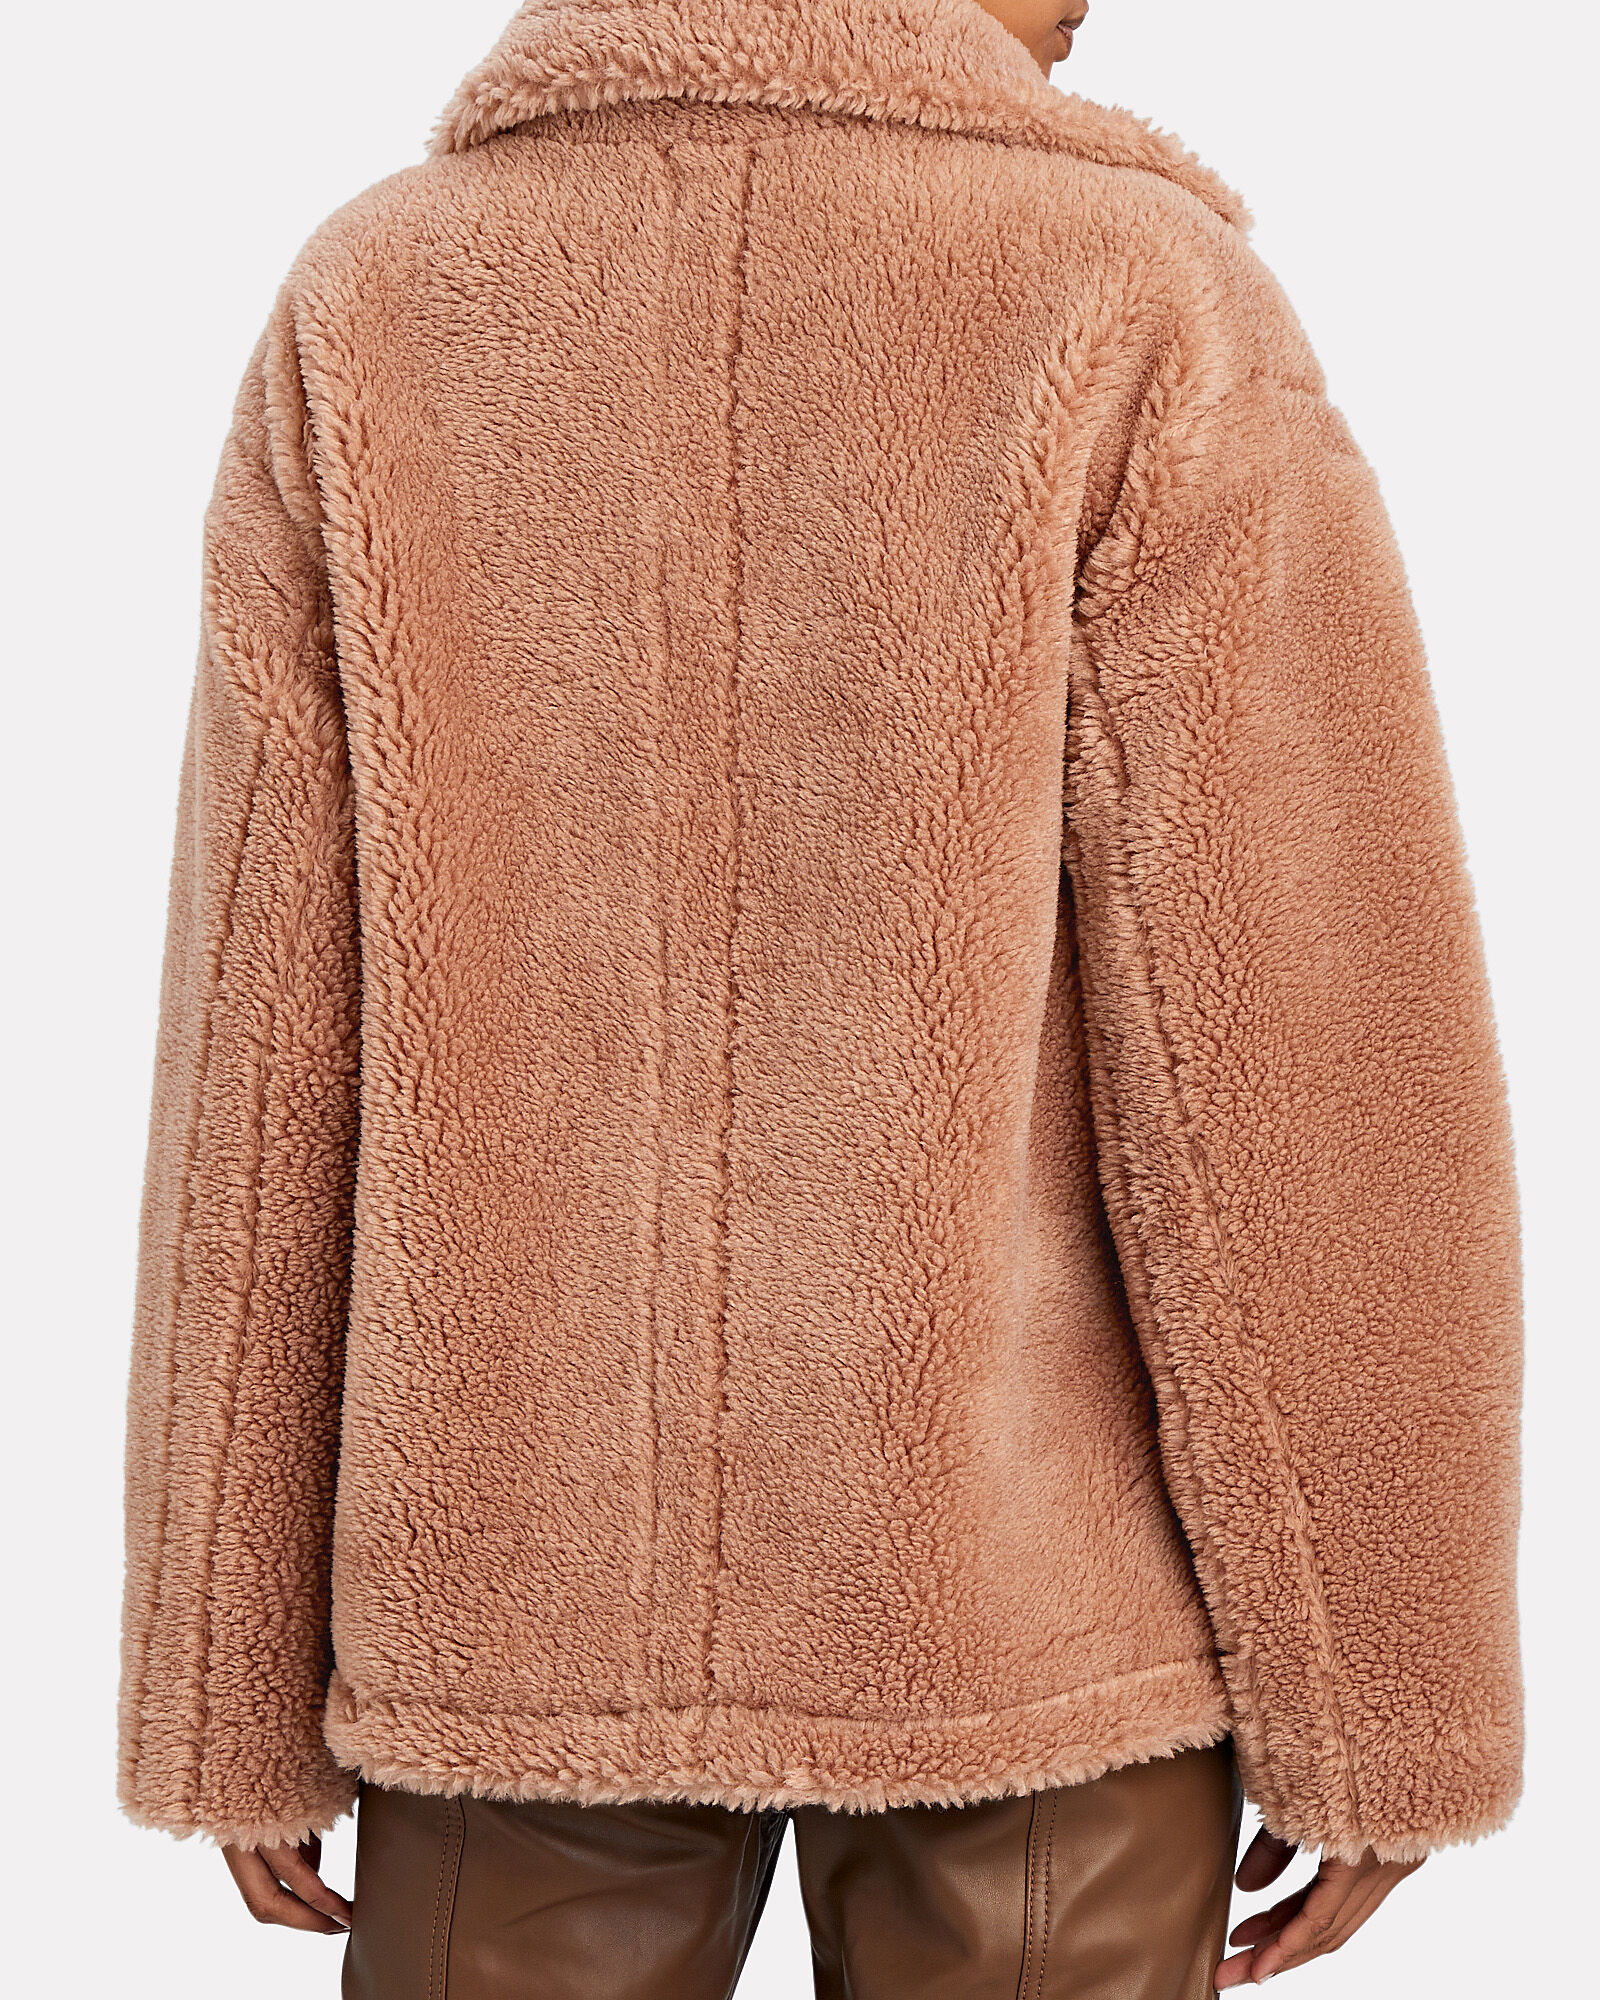 Mairna Teddy Faux Shearling Jacket, LIGHT BROWN, hi-res